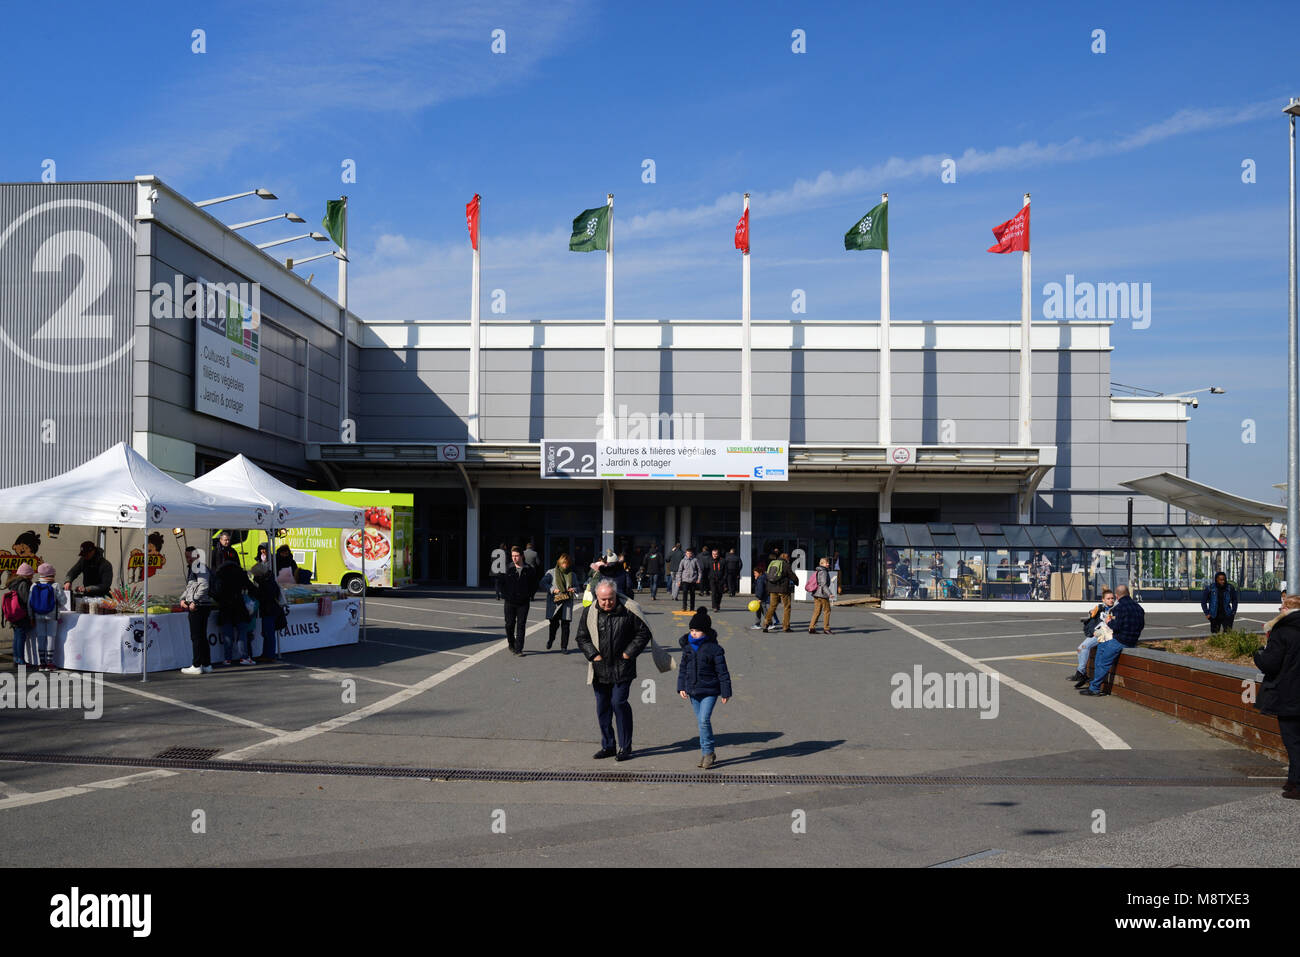 Le Meilleur Paris Expo Stock Photos Paris Expo Stock Images Alamy Ce Mois Ci